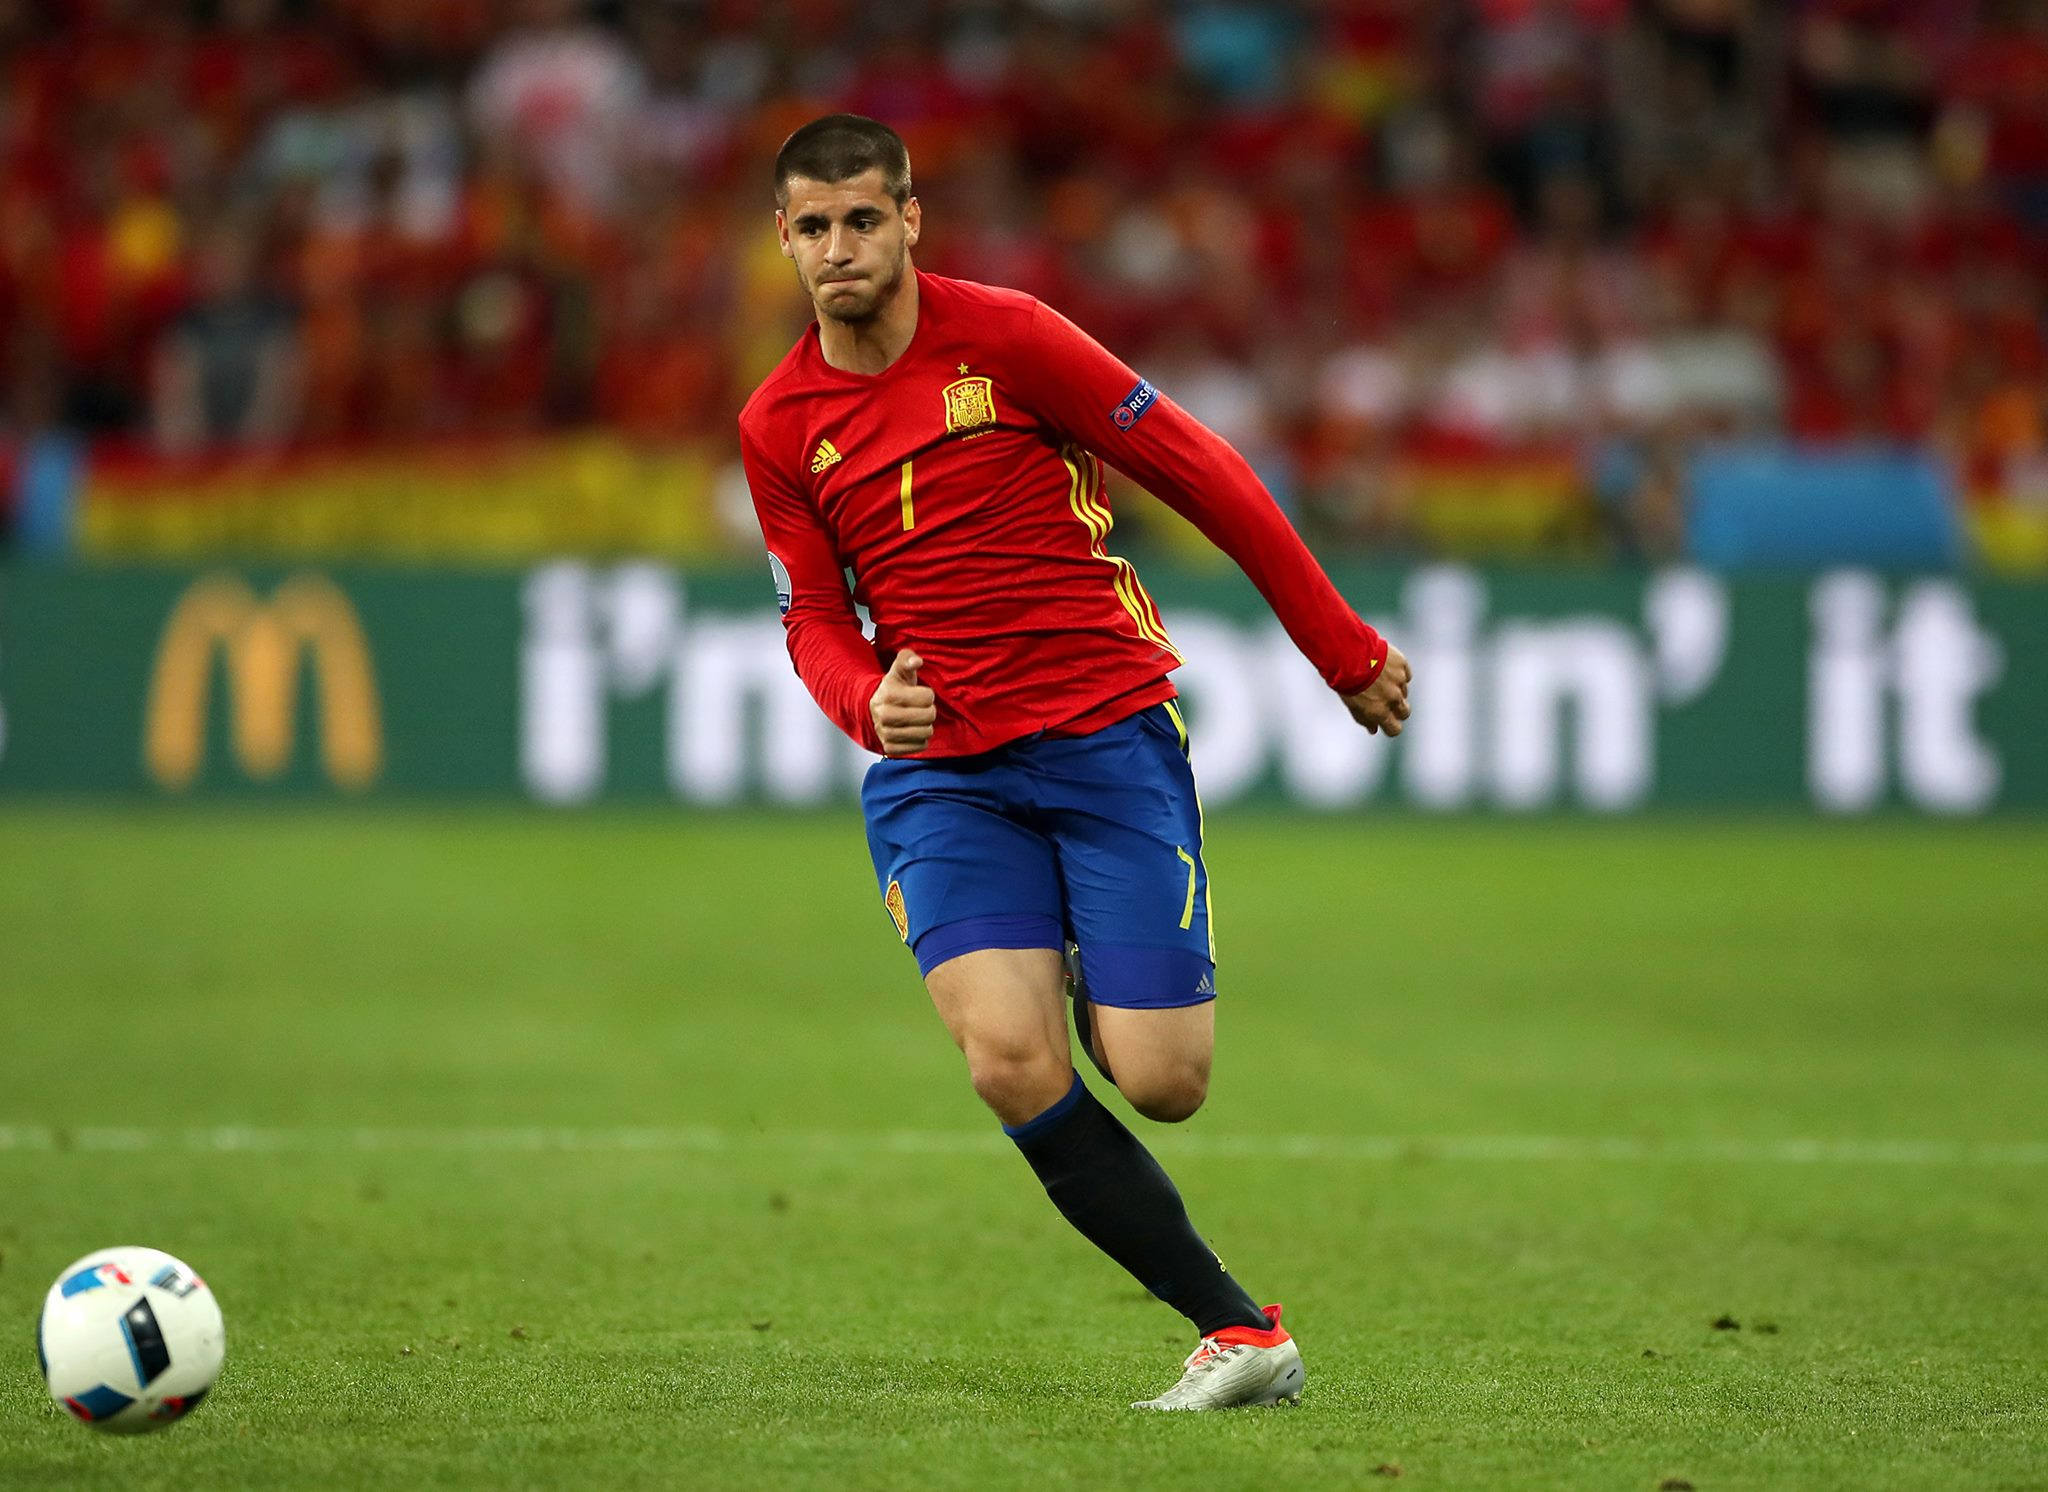 Isco nutmegs Marco Verratti during Spain v Italy friendly